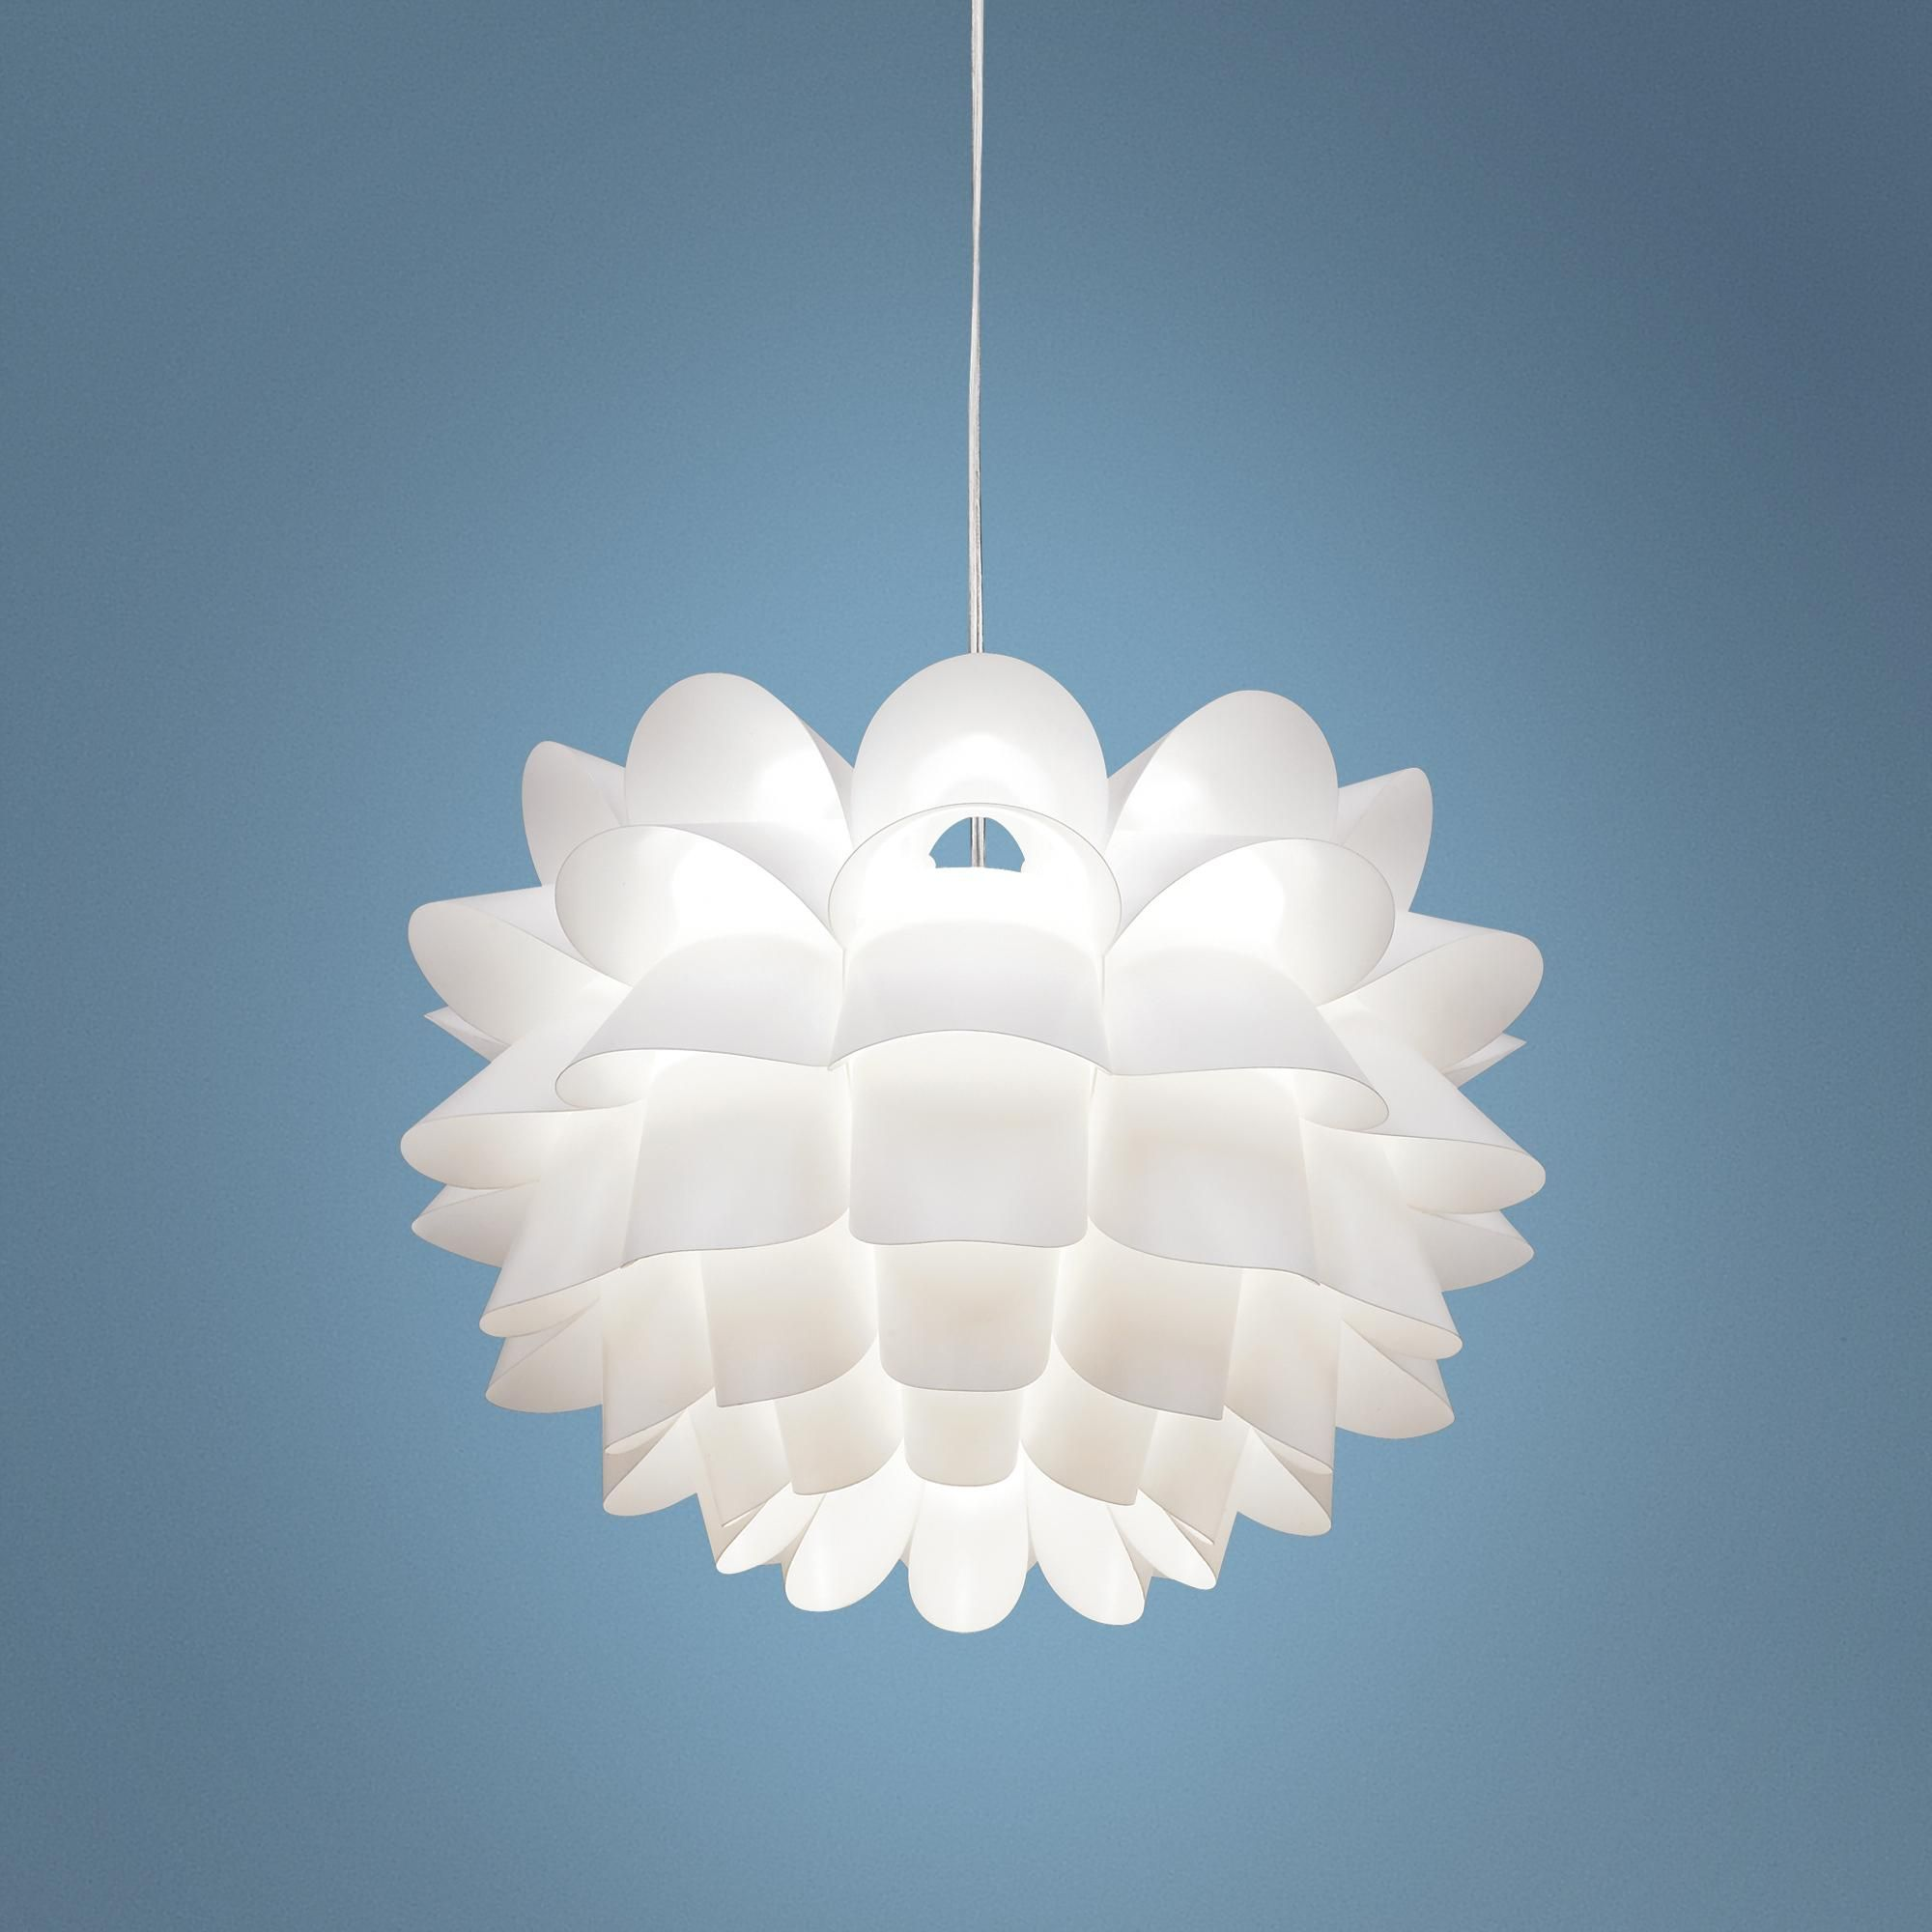 Possini euro white flower 19 12 wide pendant chandelier style possini euro white flower 19 12 wide pendant chandelier from lampsplus i think this would be awesome over our breakfast table and you can see it mightylinksfo